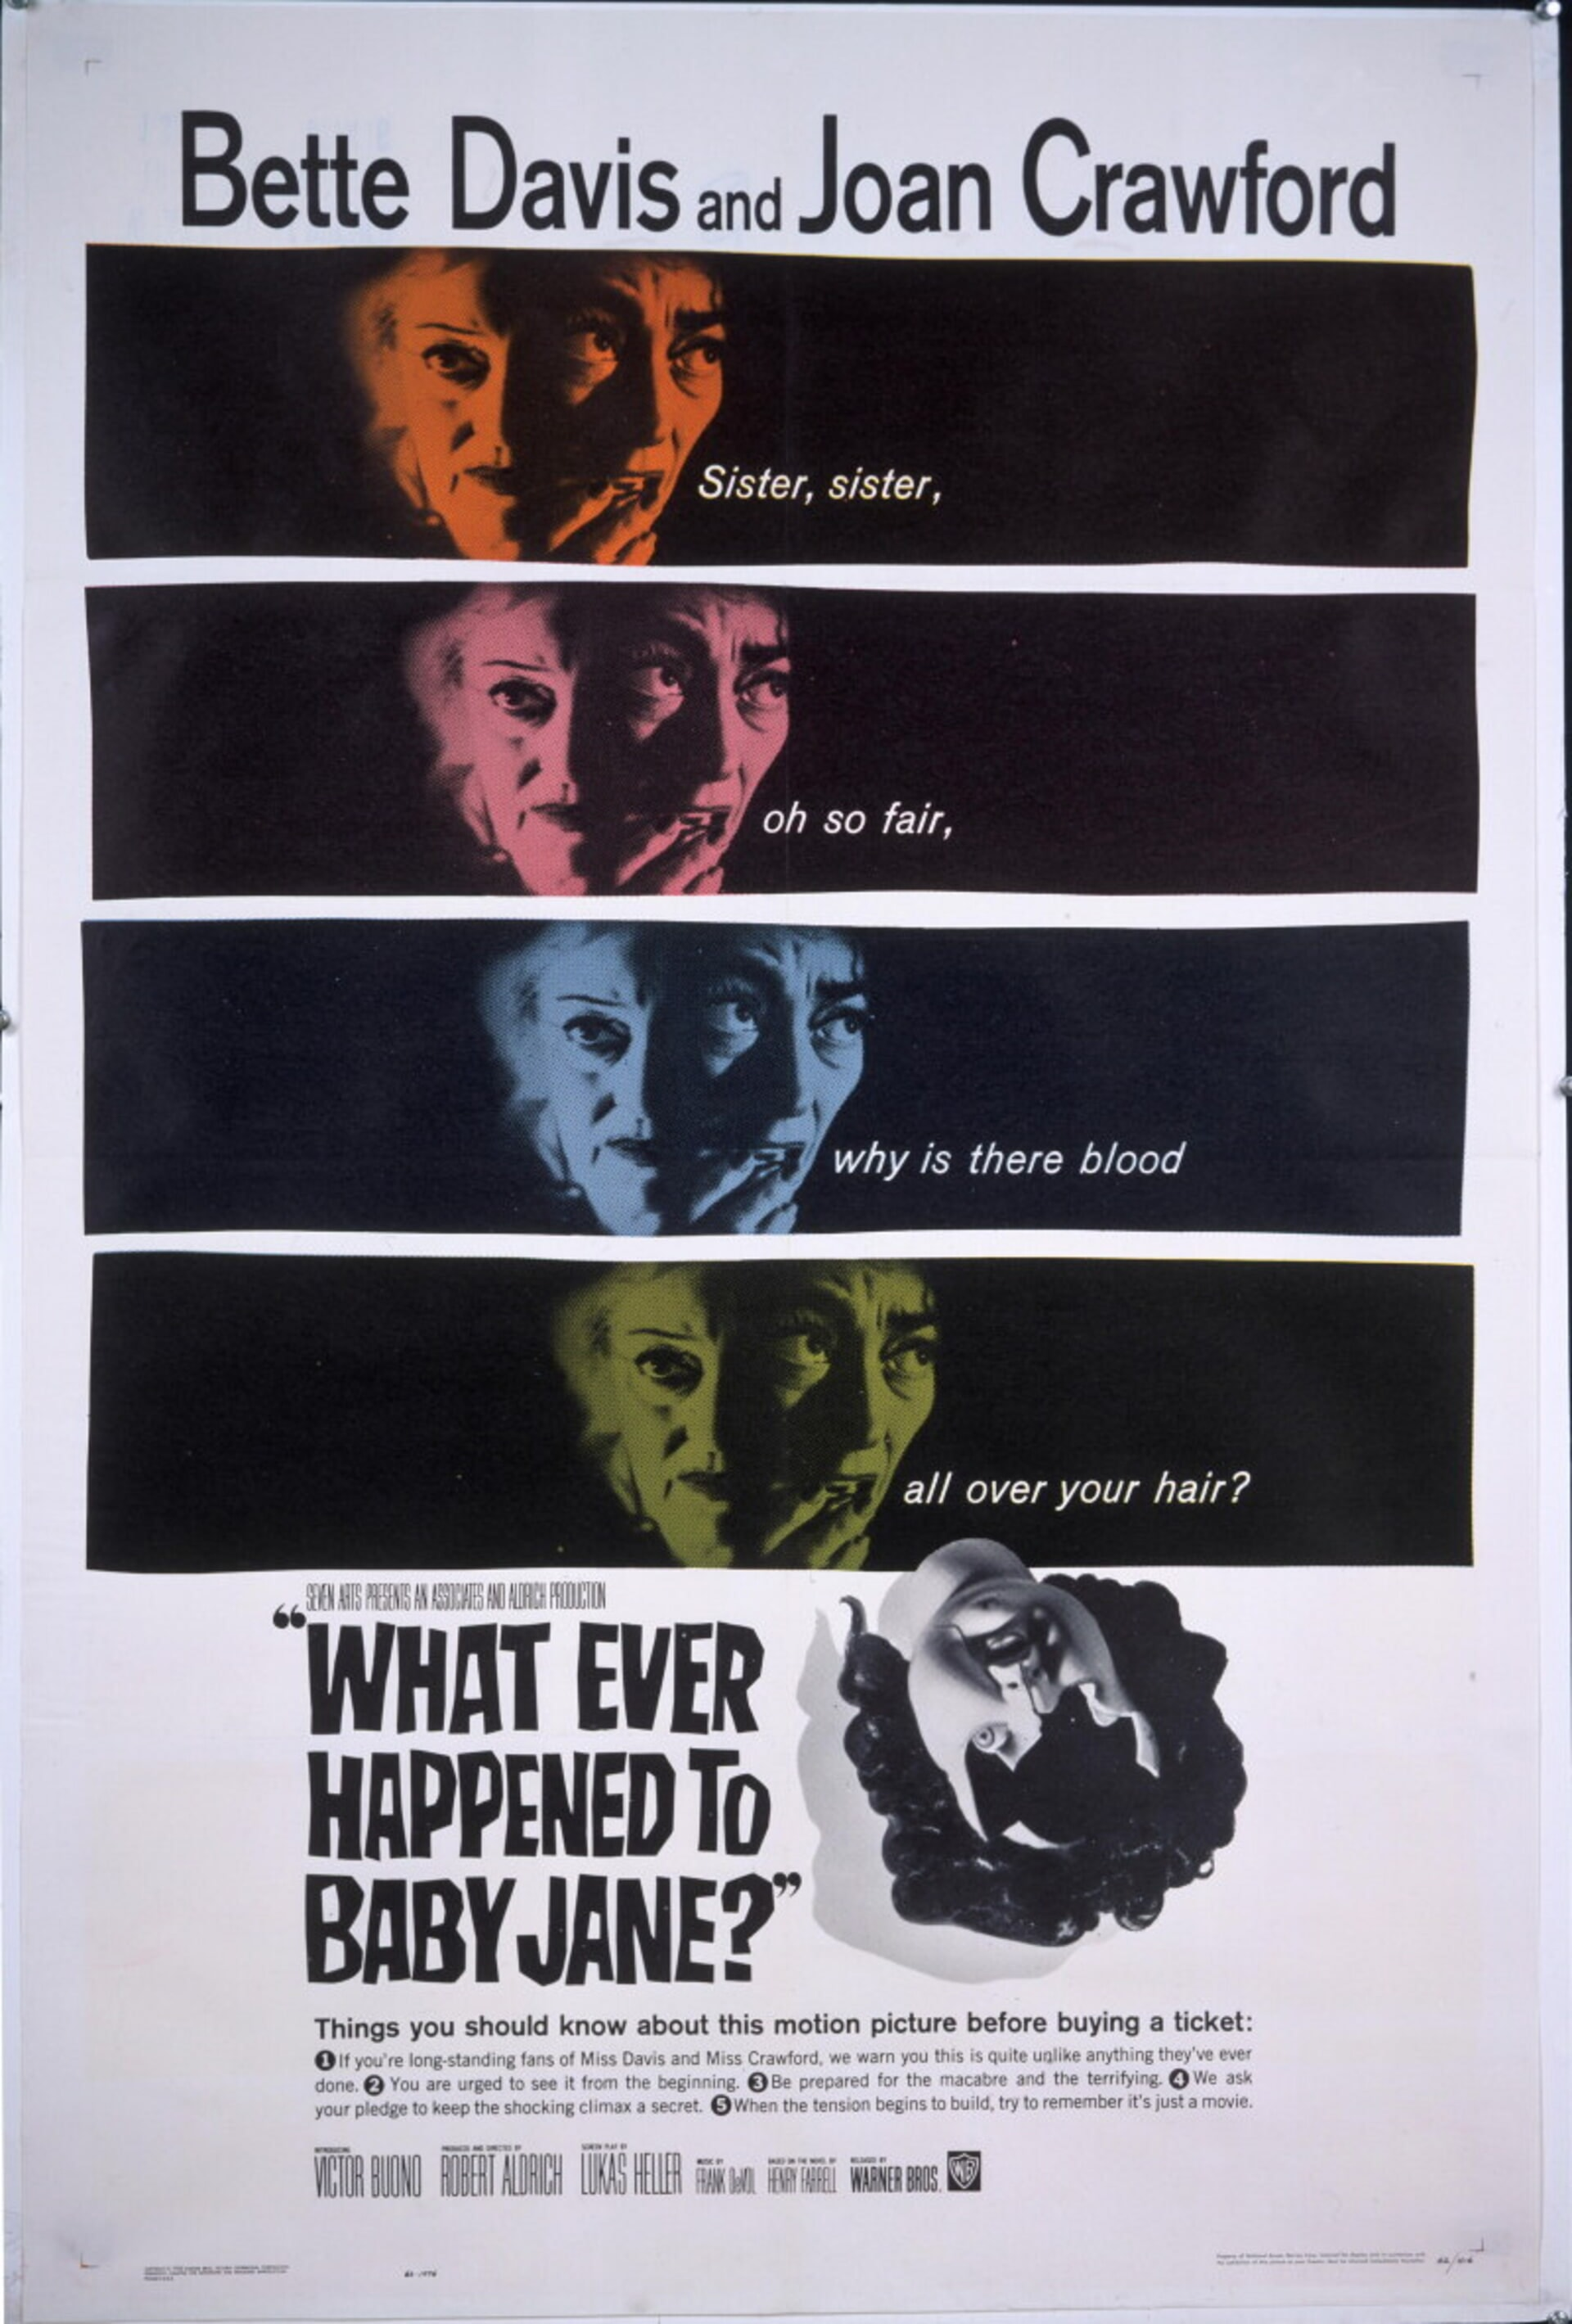 What Ever Happened to Baby Jane? - Poster 1